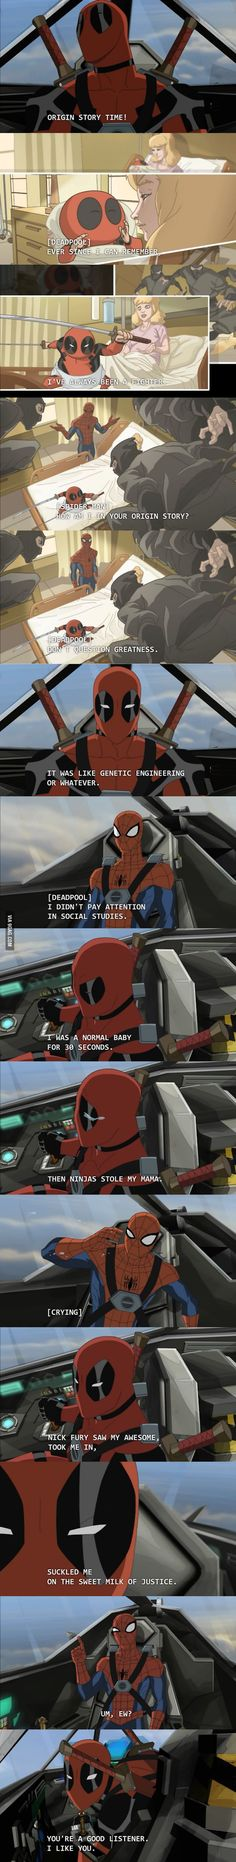 Deadpool's origin as told by Deadpool